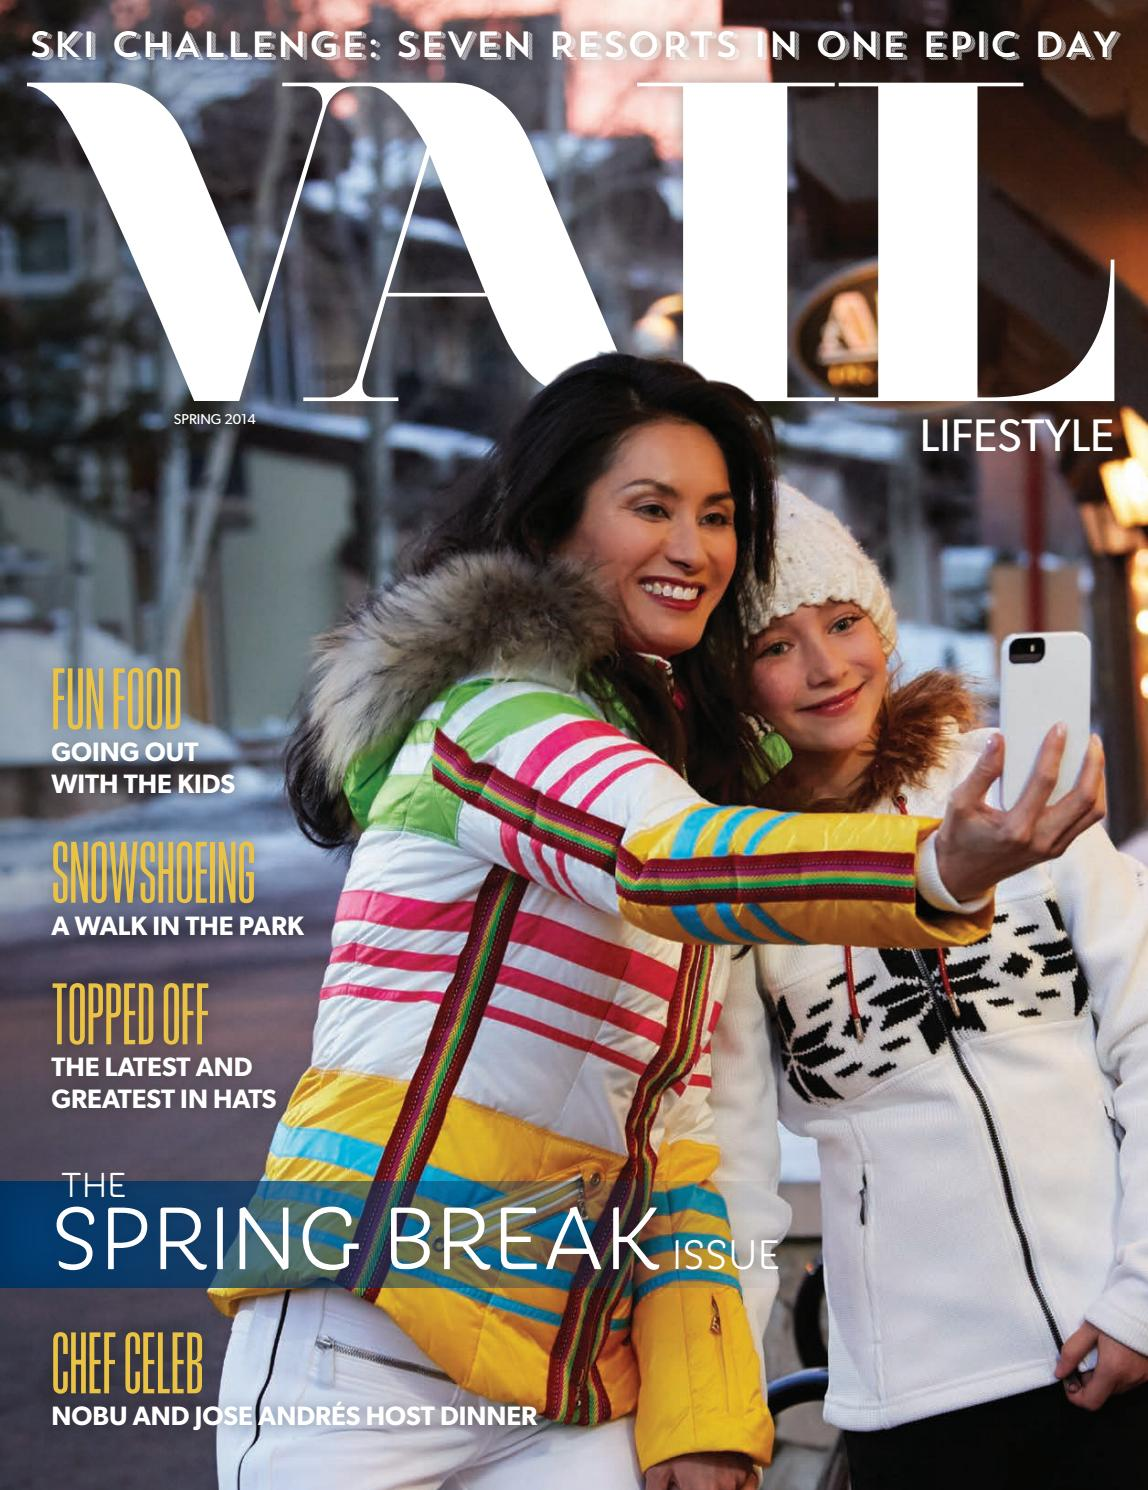 87889fe7164a Vail Lifestyle Magazine by Aaron Tipton - issuu